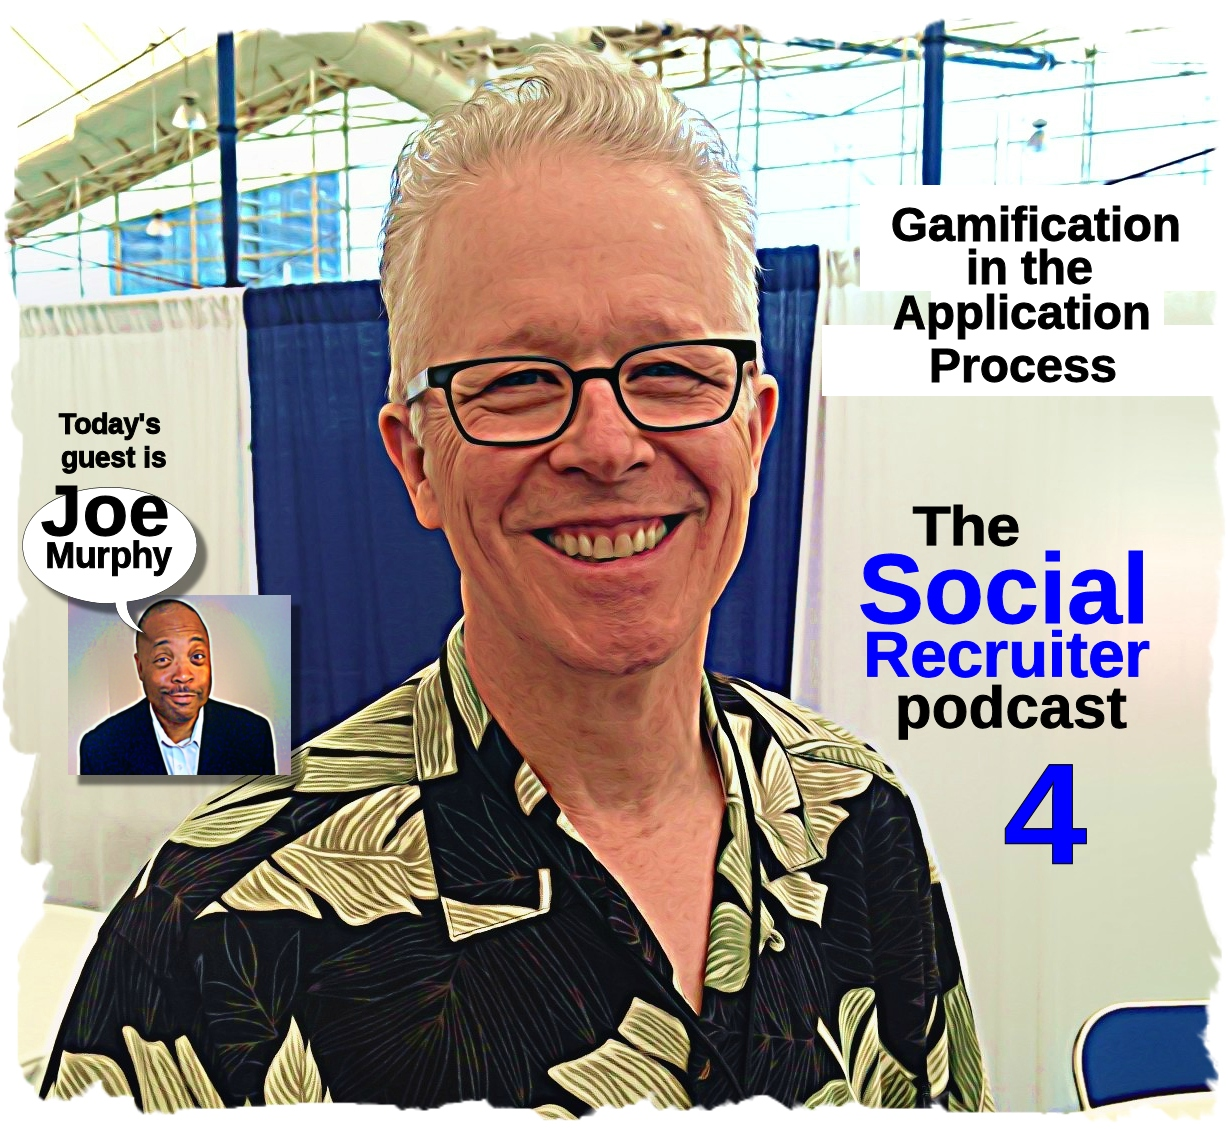 Joe Murphy discusses gamification.